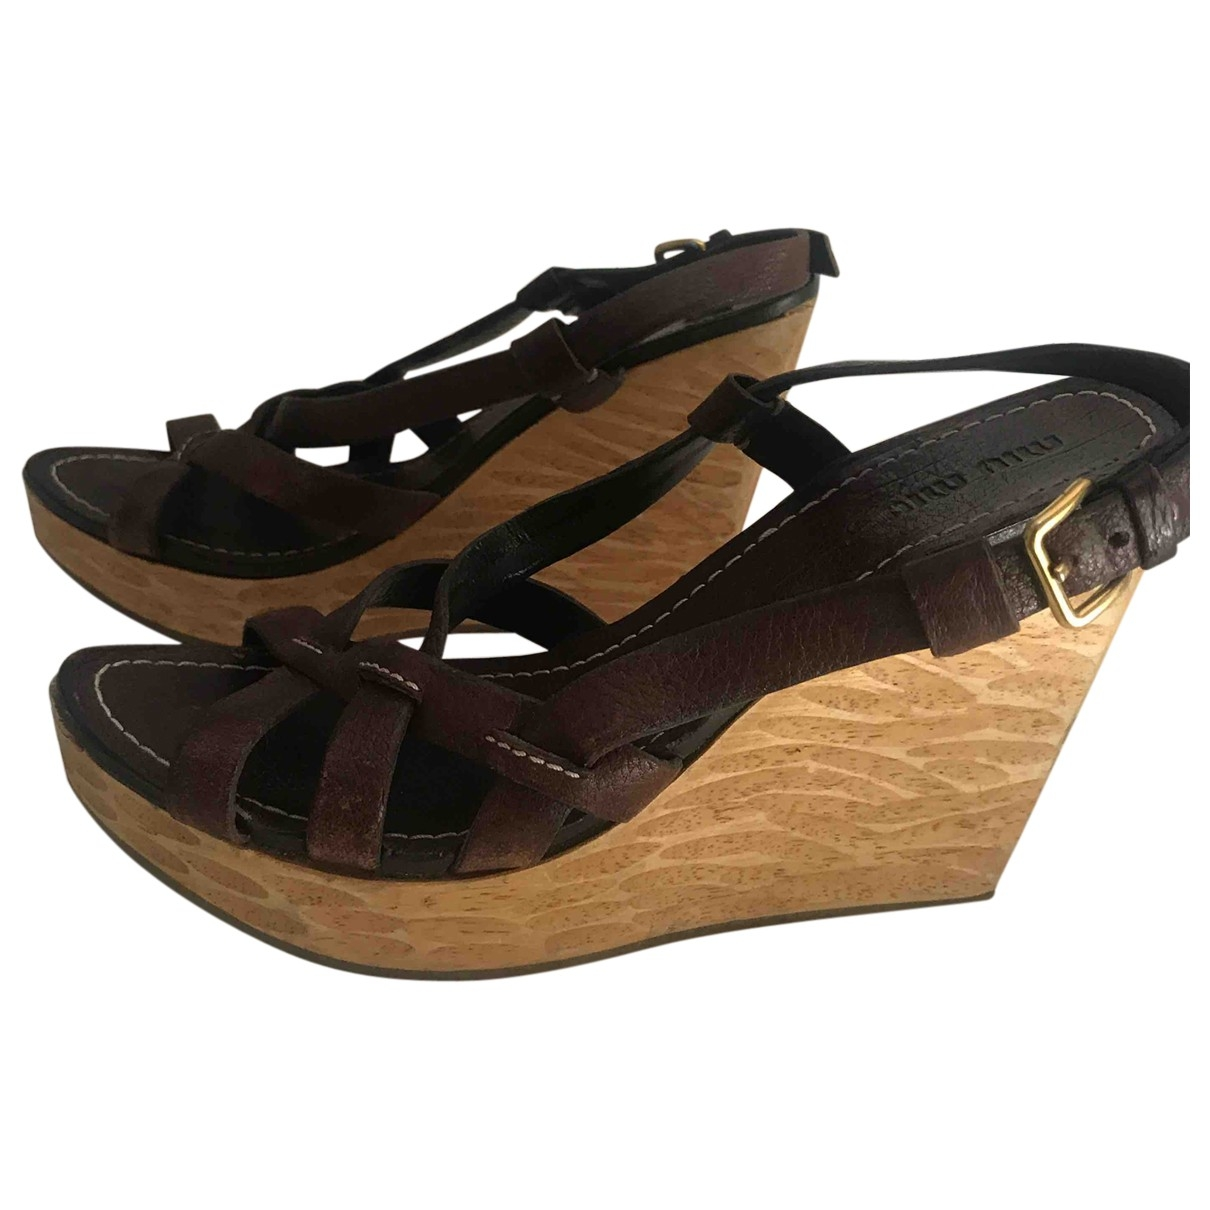 Miu Miu \N Brown Leather Sandals for Women 39 IT